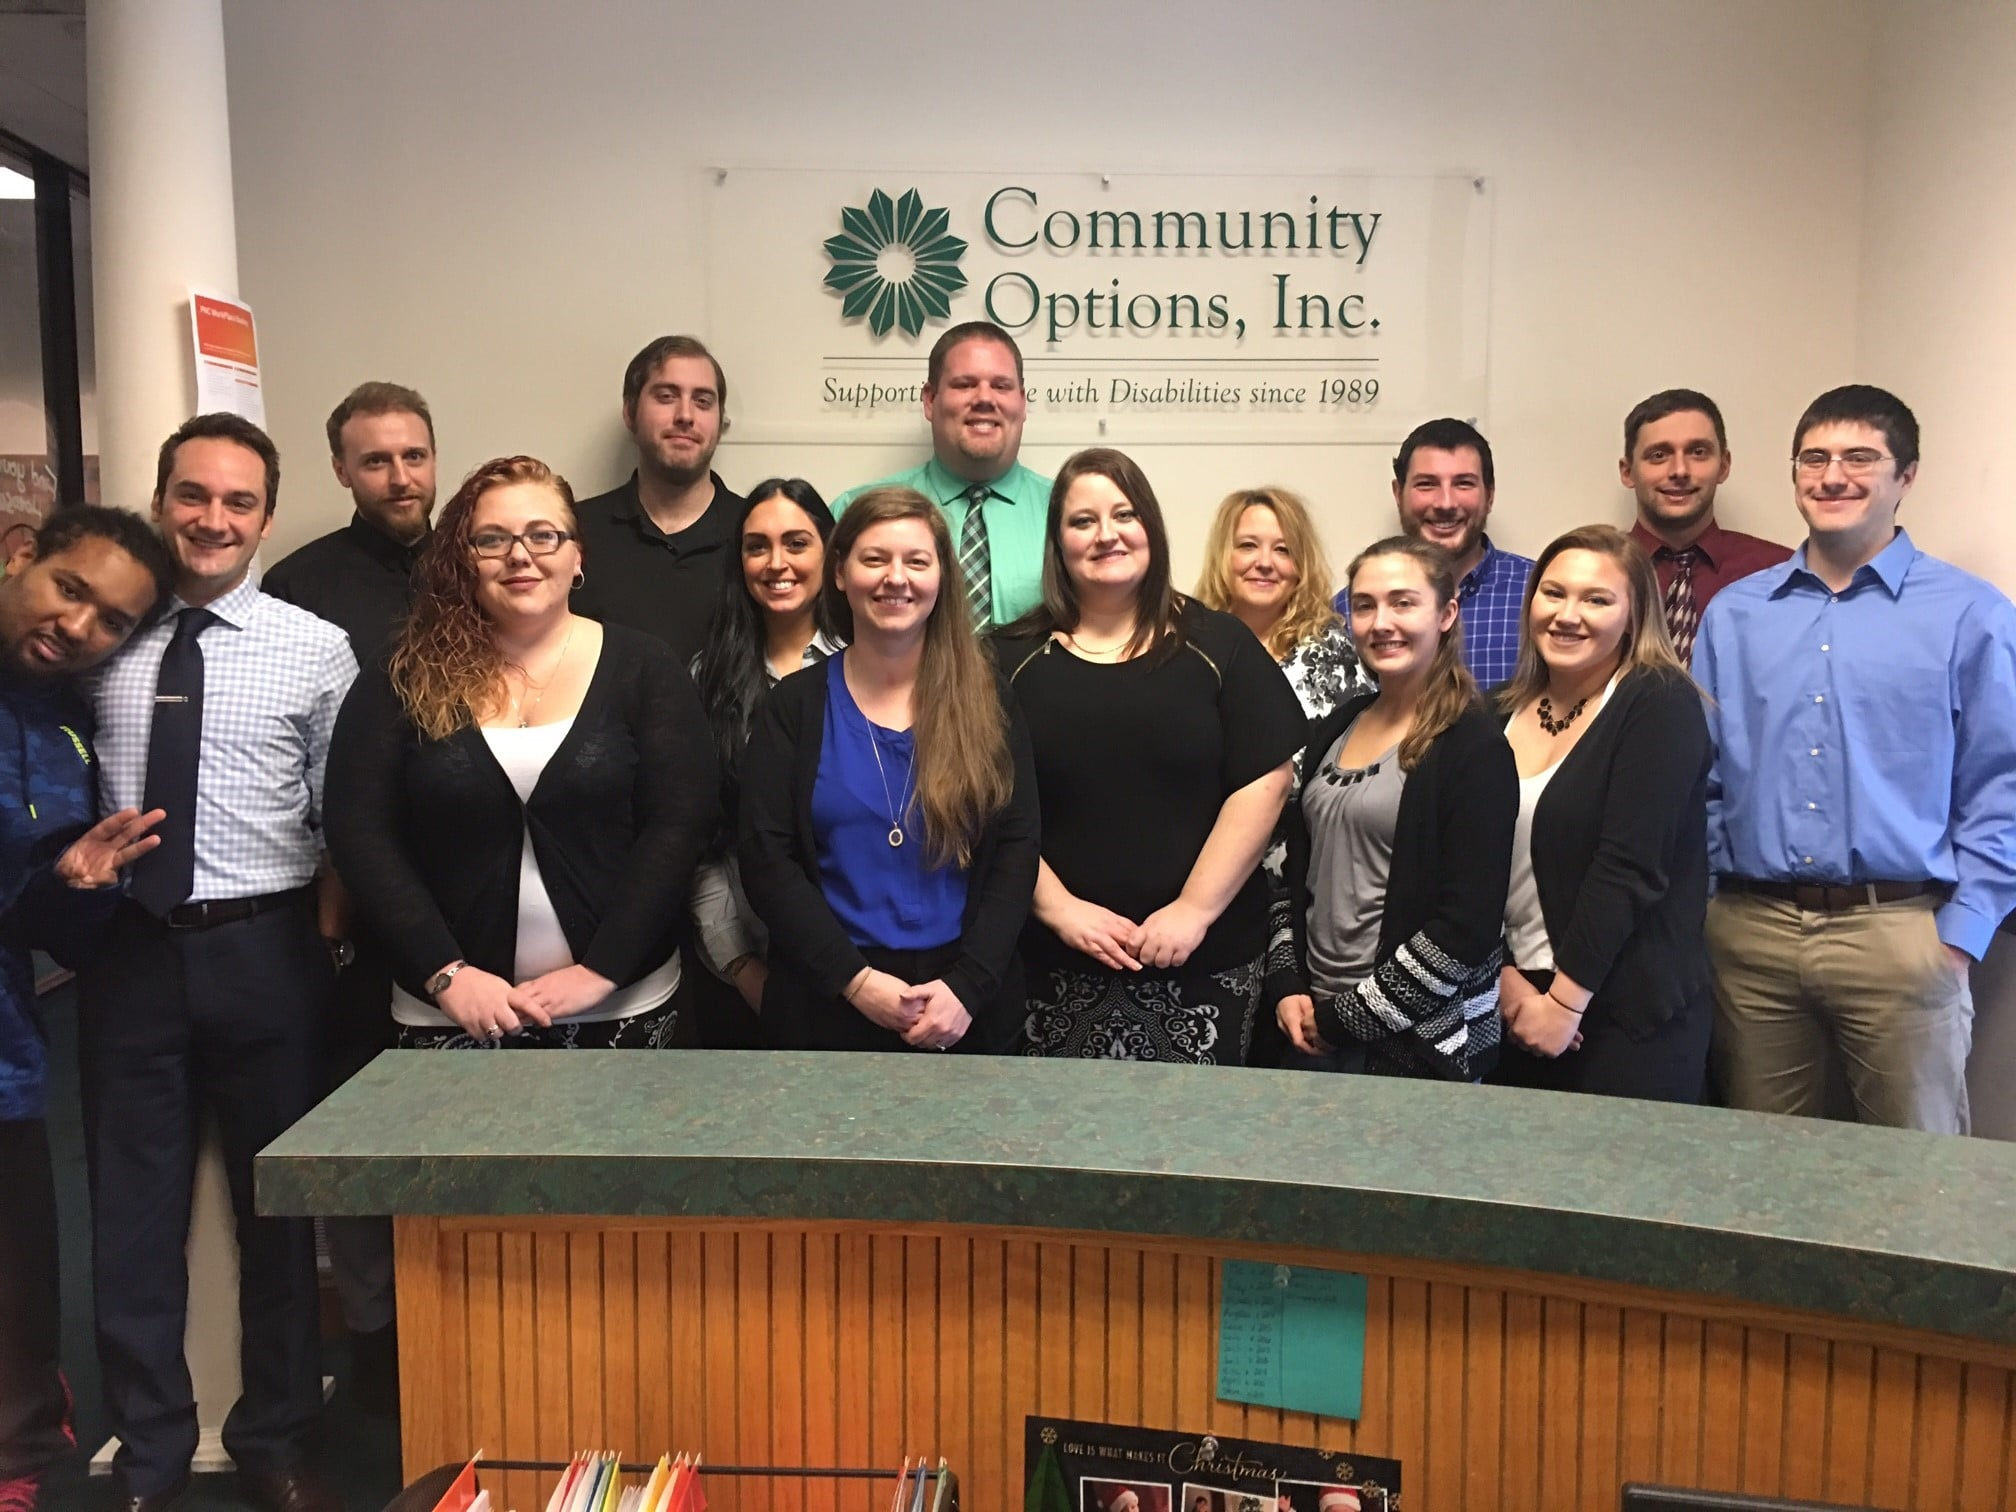 Community Options, Inc. of Westmoreland County, PA.